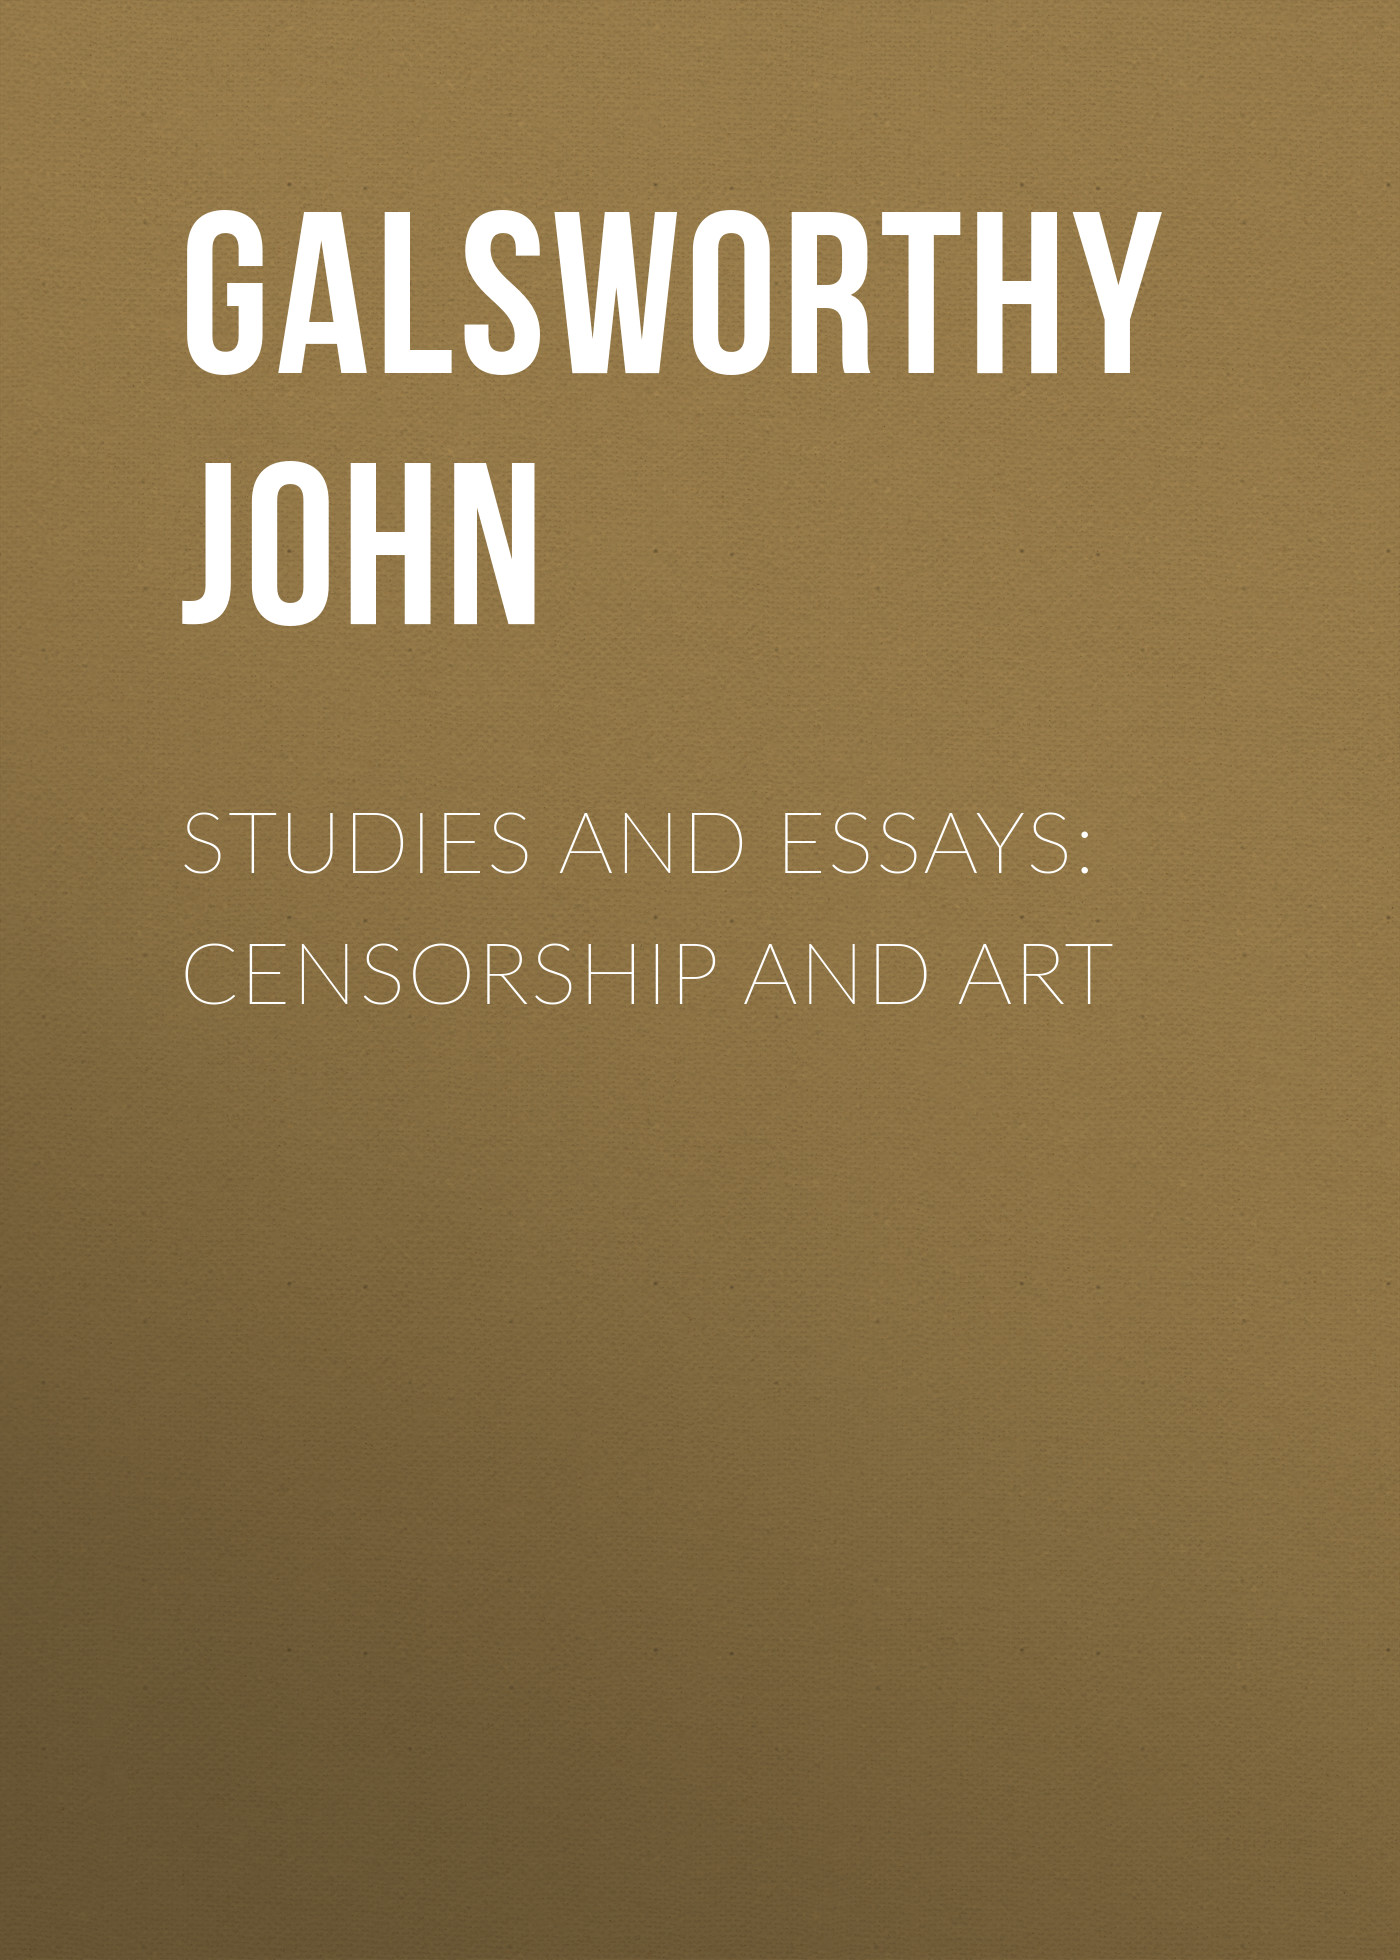 лучшая цена Galsworthy John Studies and Essays: Censorship and Art